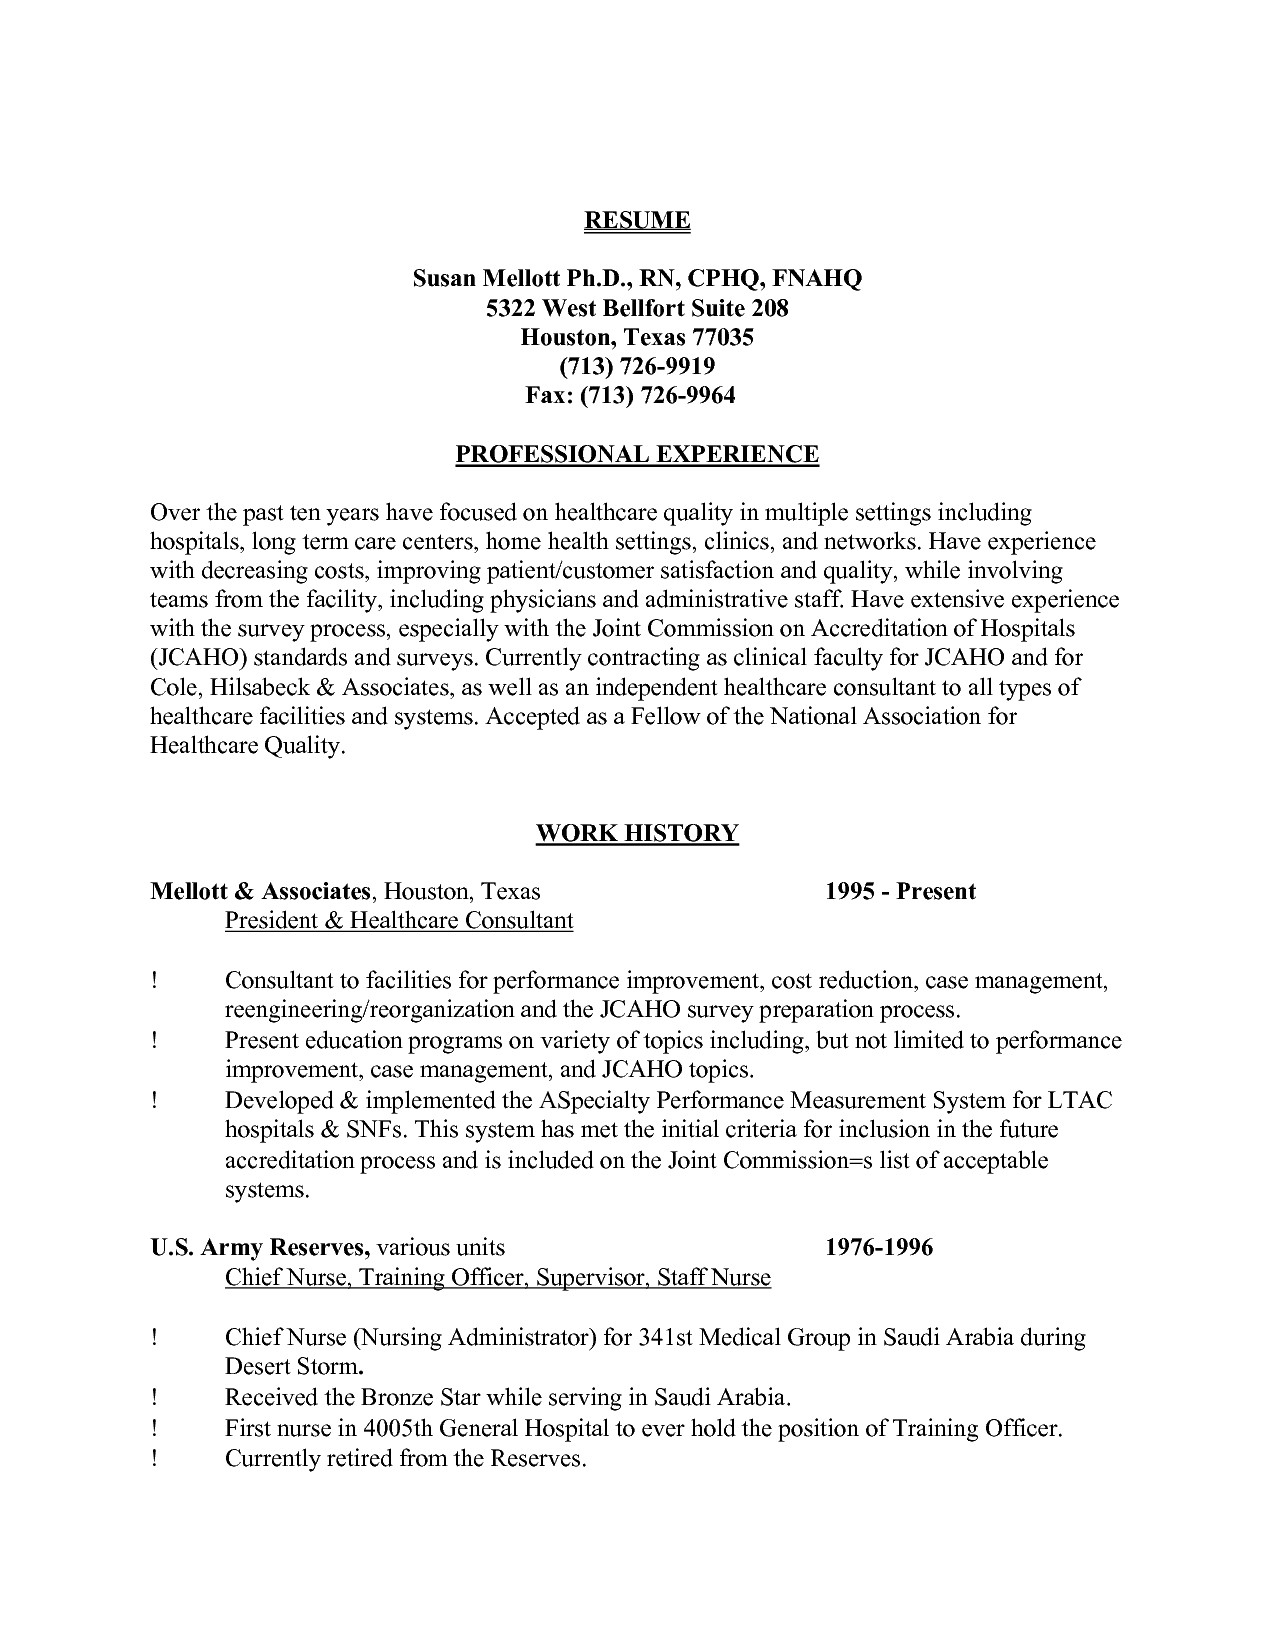 Termination Letter Template - Star Resume Examples Termination Letter Template Fresh Separation